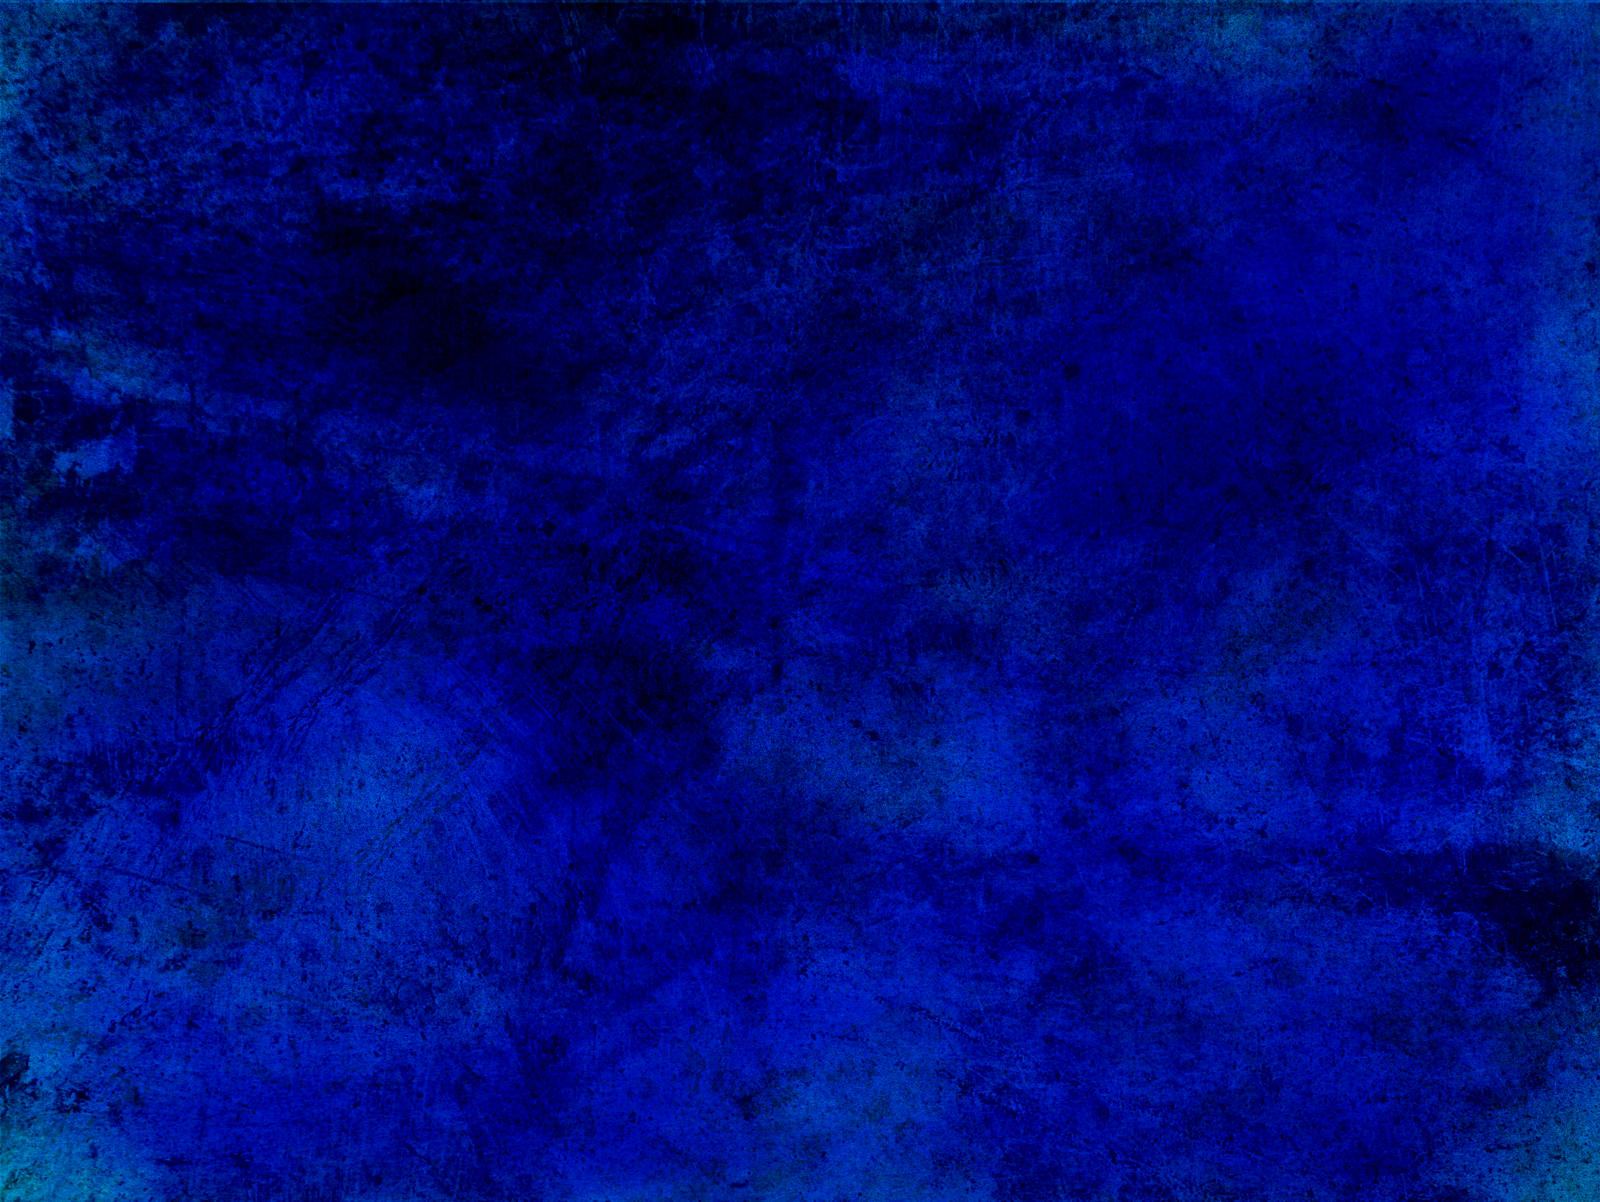 Dark Blue Grunge Texture | www.imgkid.com - The Image Kid ...